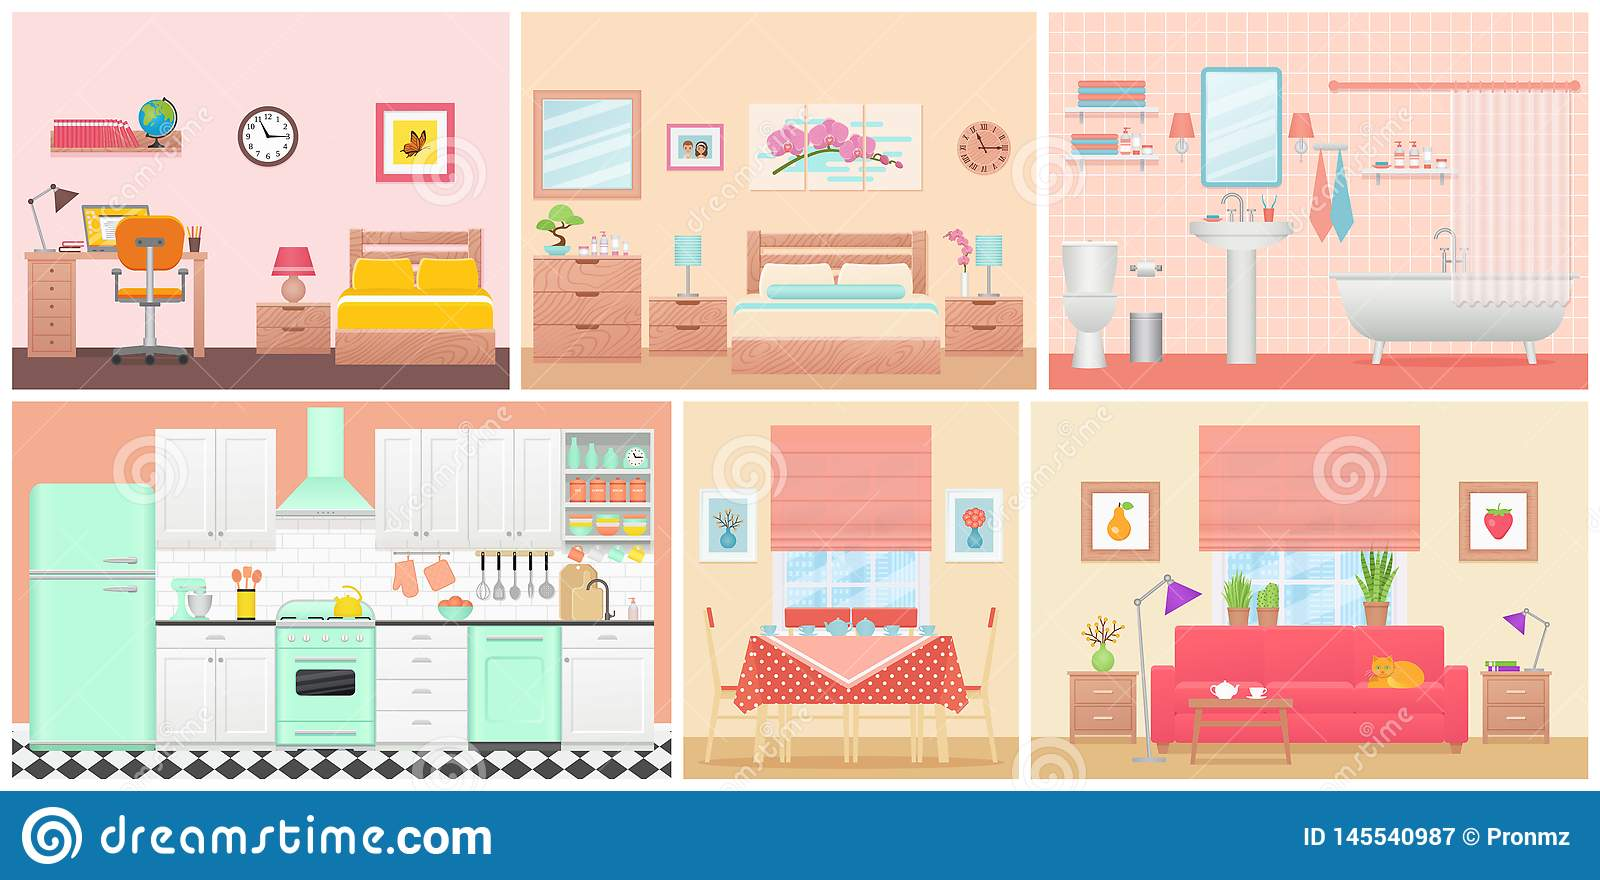 Room Interiors Vector Illustration In Flat Design Cartoon